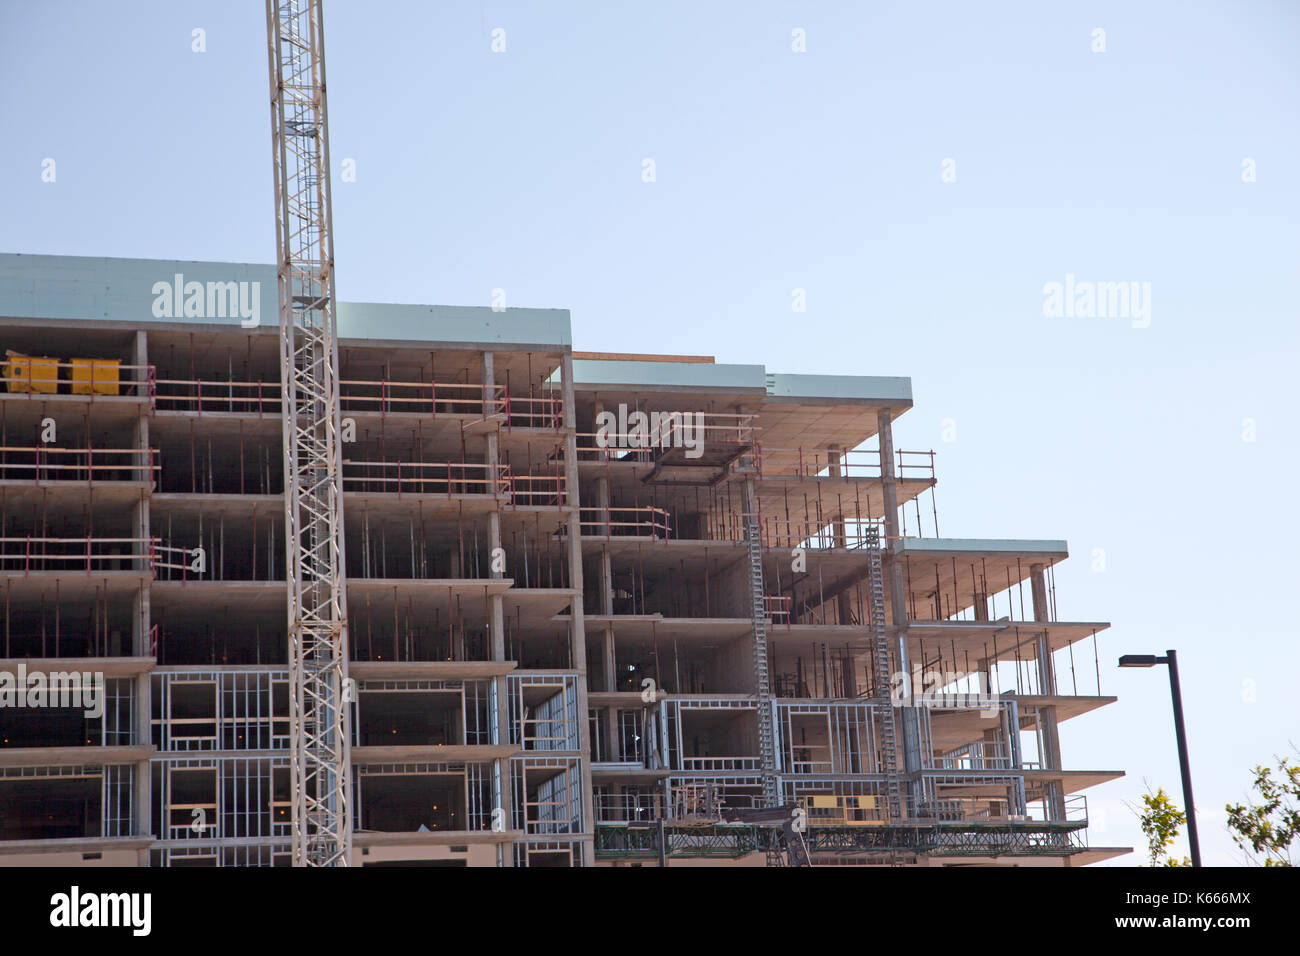 steel beams and concrete floors inside a multi-story building under construction - Stock Image